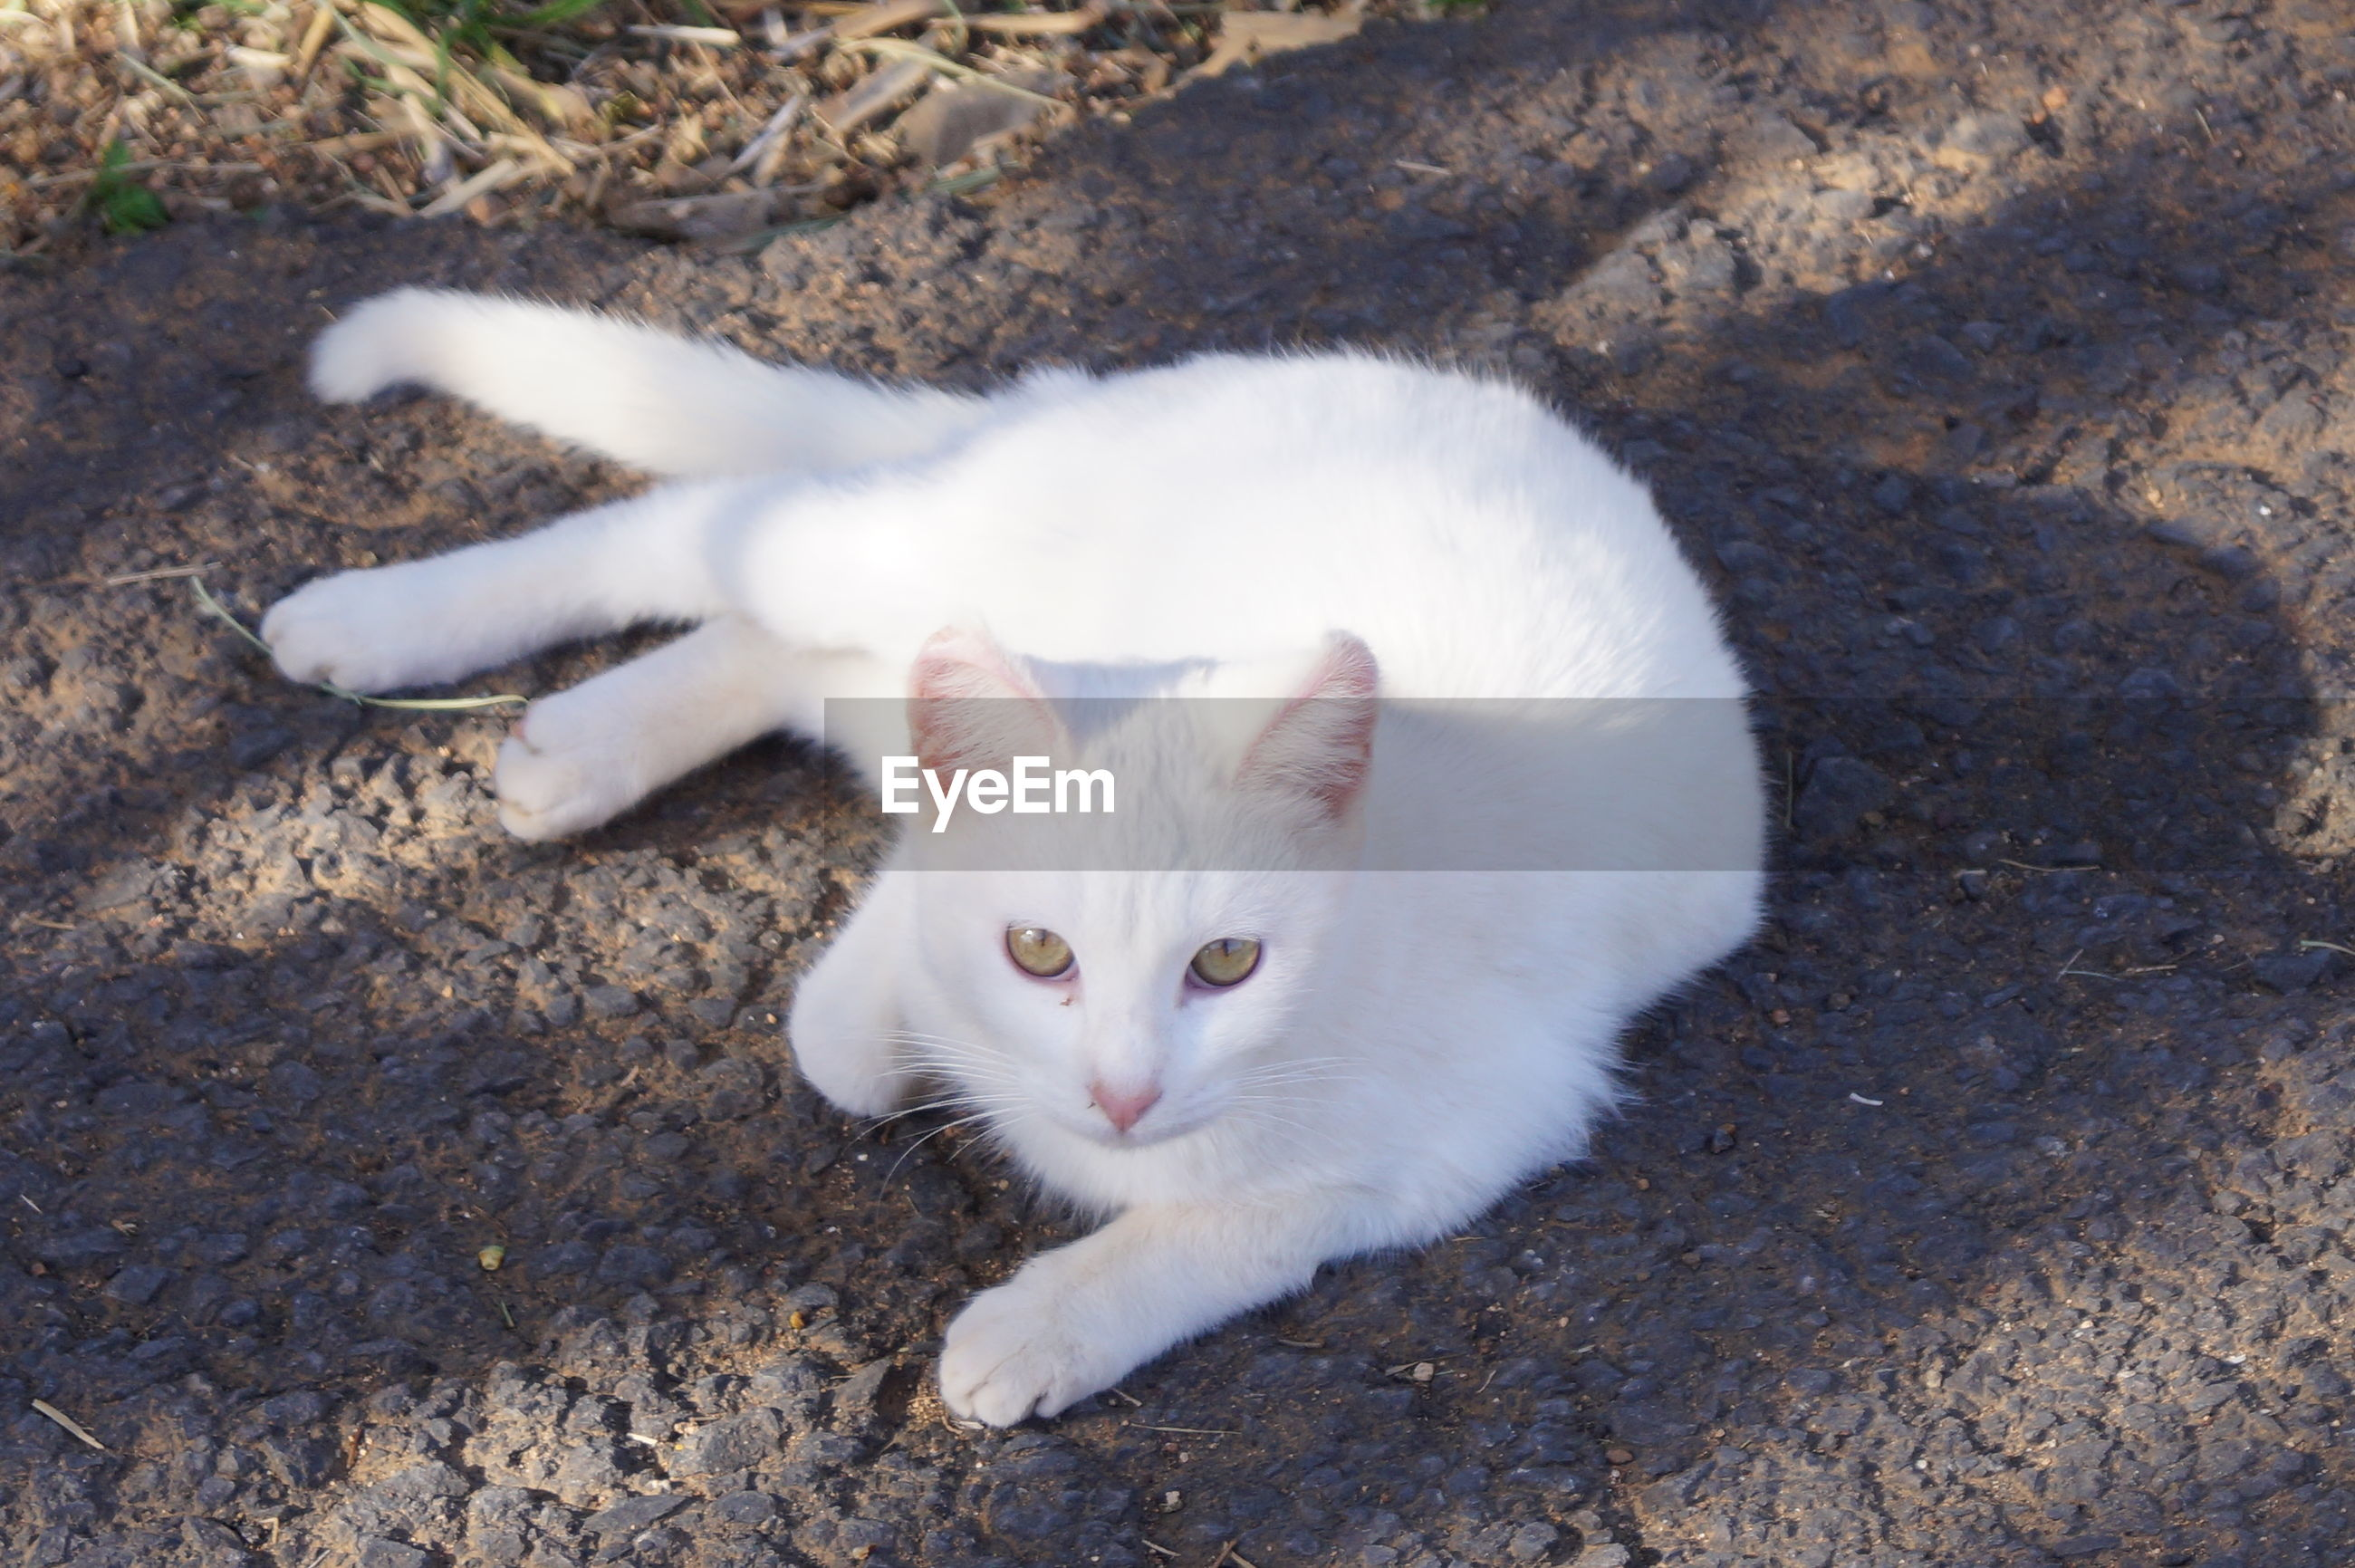 domestic cat, domestic animals, pets, animal themes, mammal, feline, one animal, high angle view, white color, looking at camera, portrait, outdoors, day, no people, kitten, nature, close-up